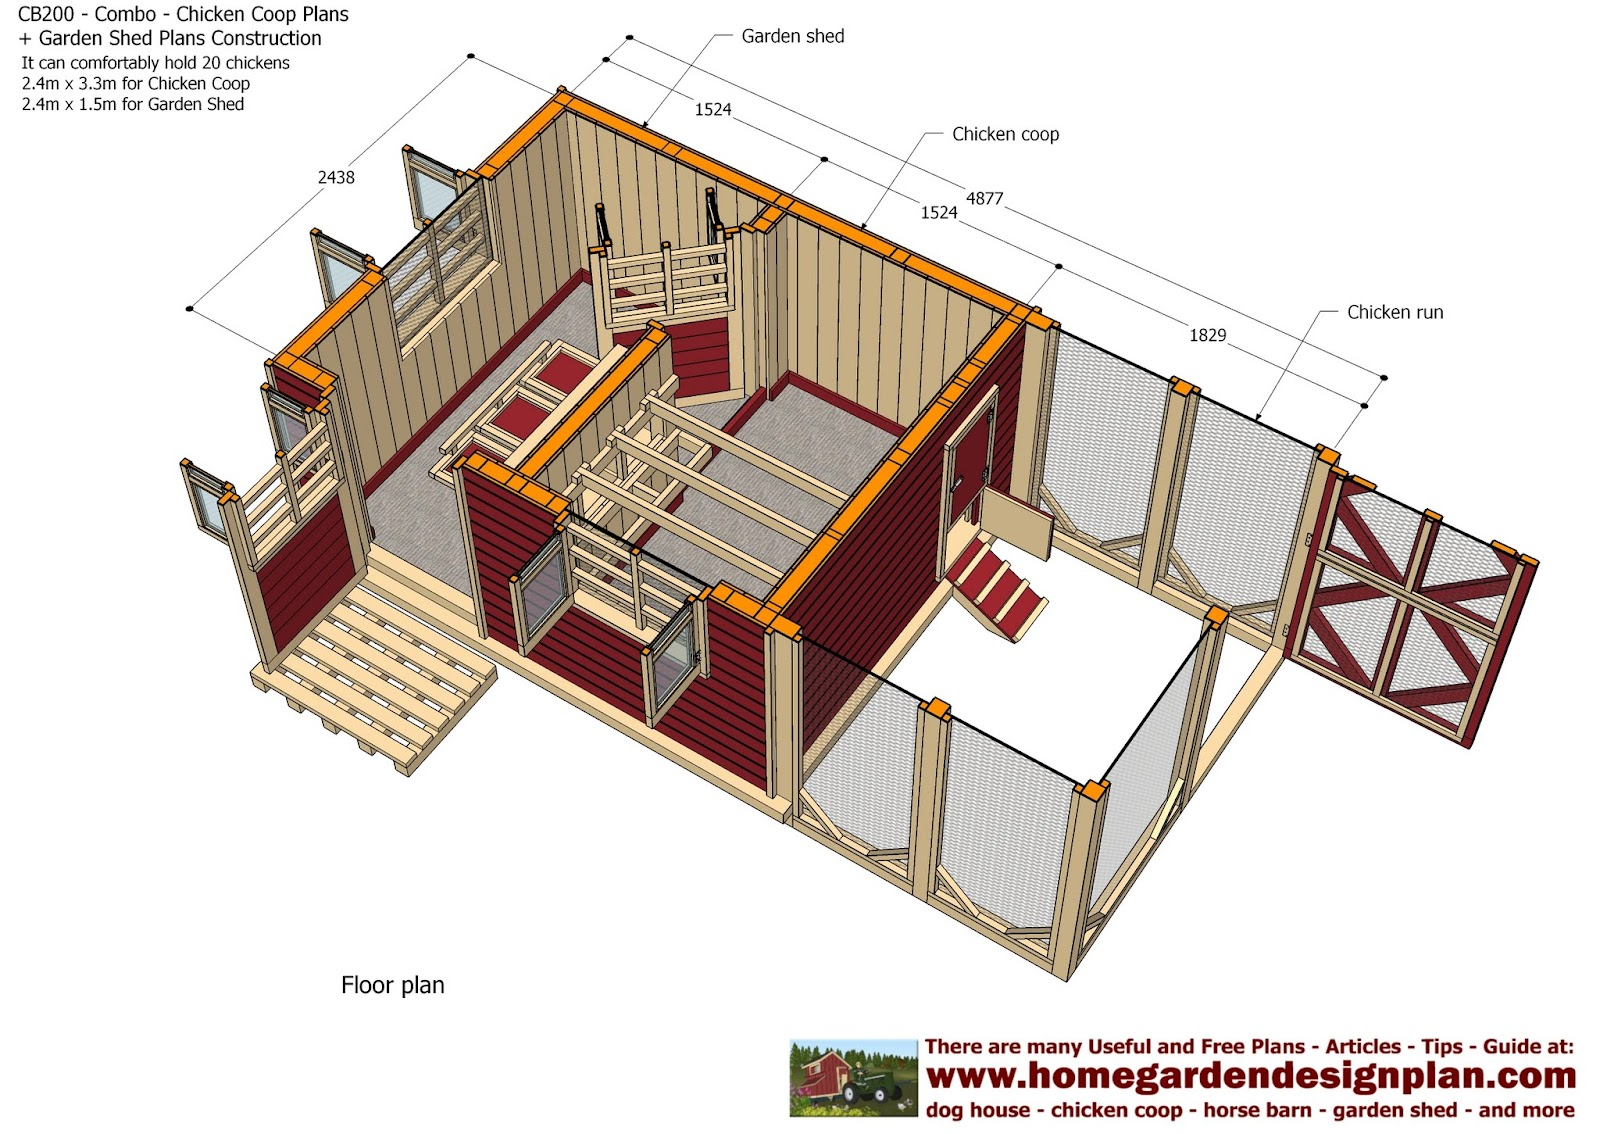 Home garden plans cb200 combo plans chicken coop for Plans chicken coop